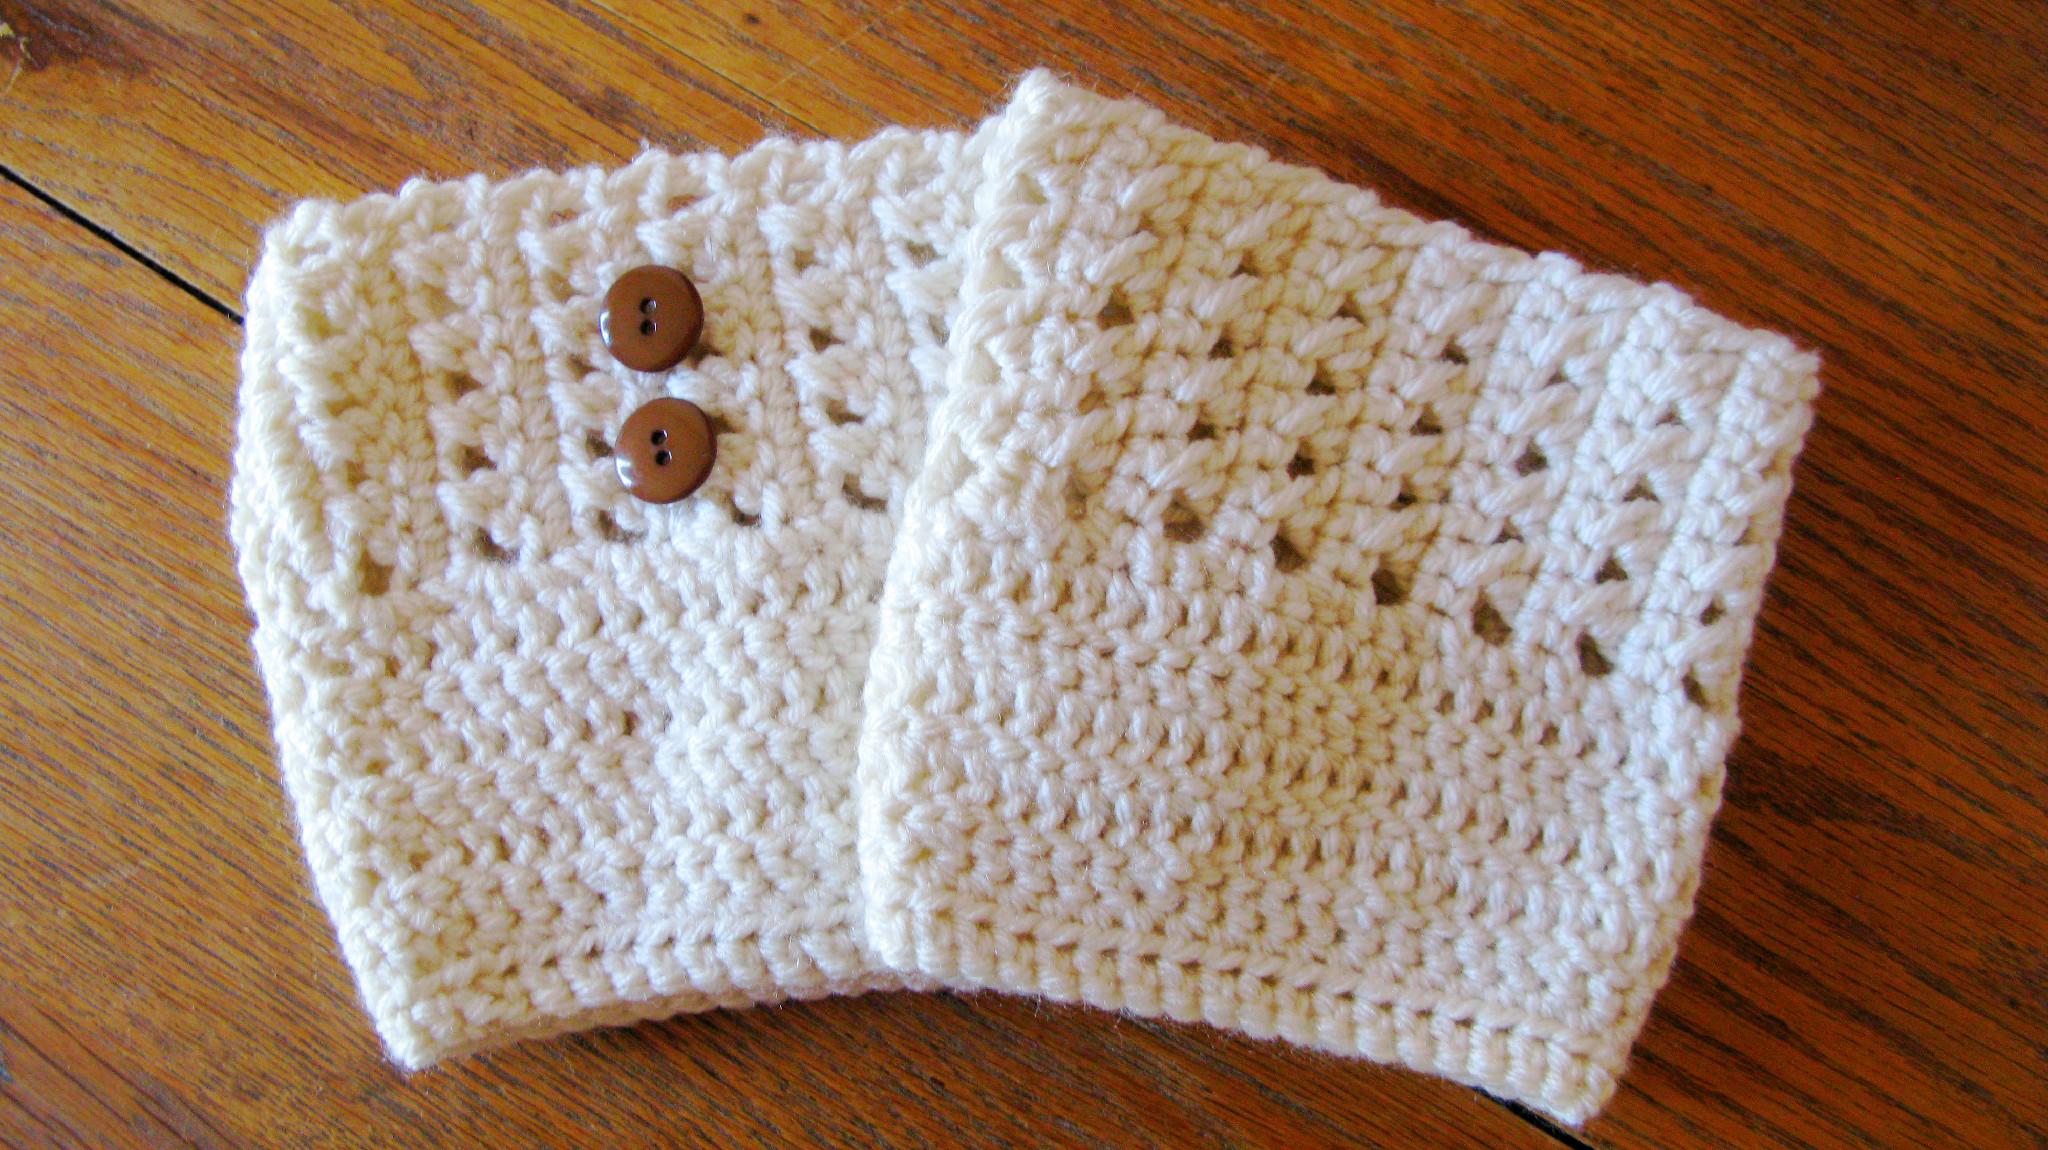 Cross Stitch Boot Cuff Pattern - ELK Studio - Handcrafted Crochet ...